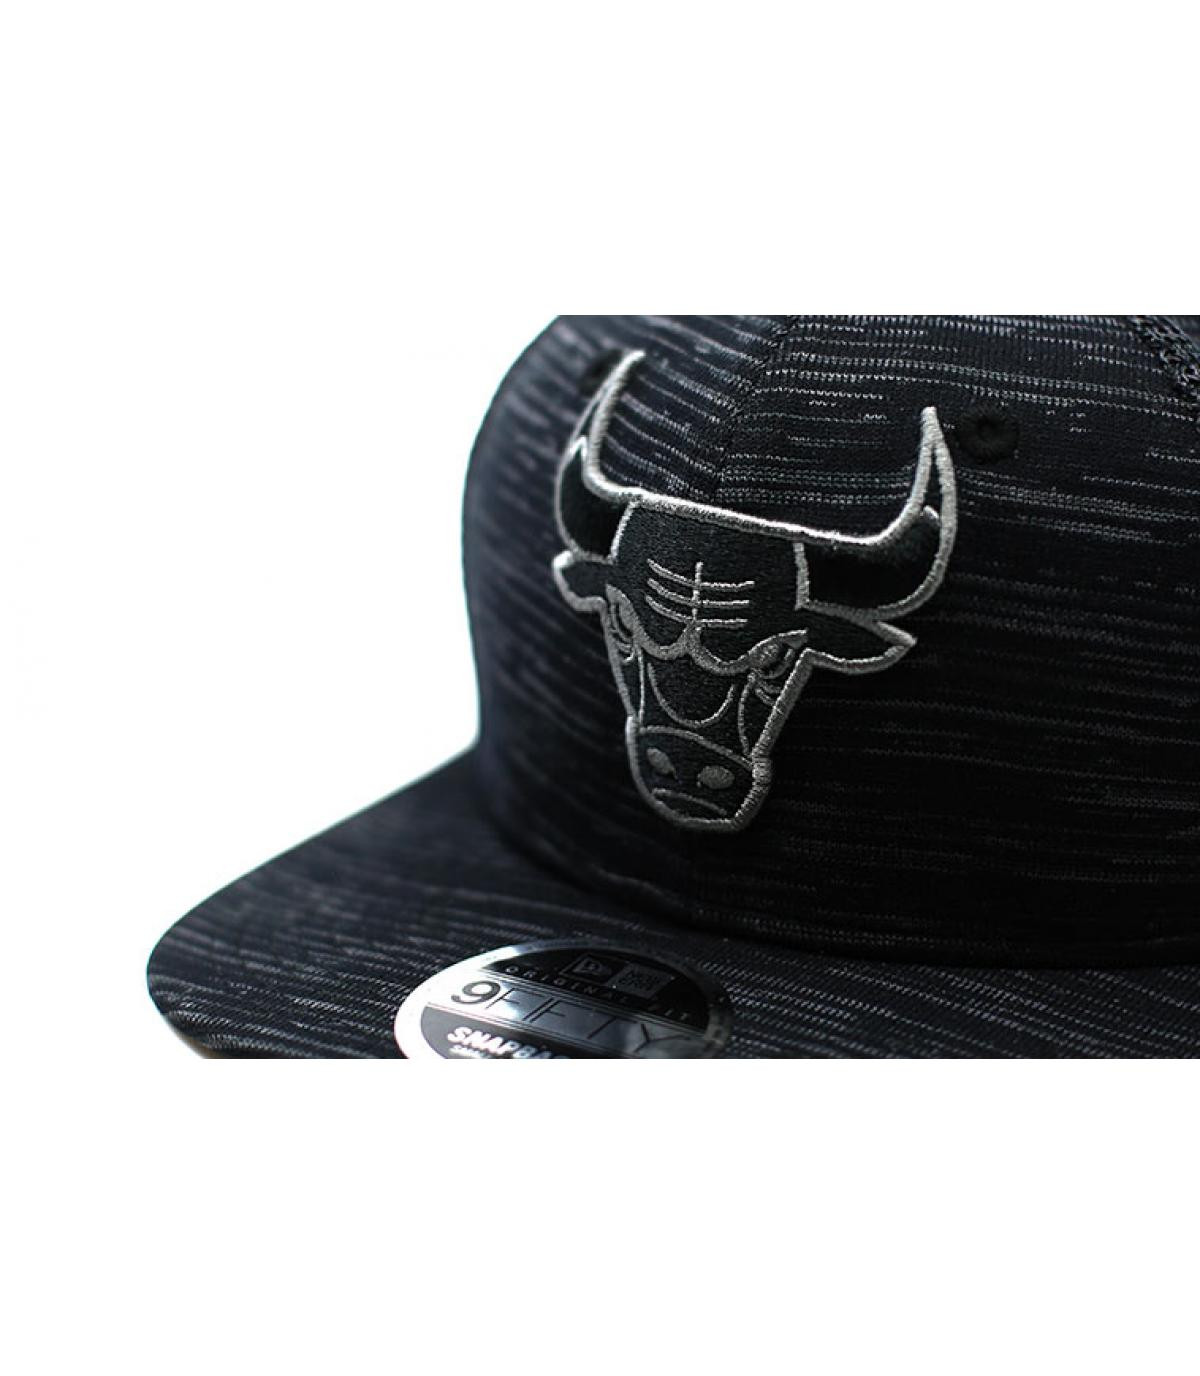 Détails Engineered Fit Bulls 9Fifty black - image 3